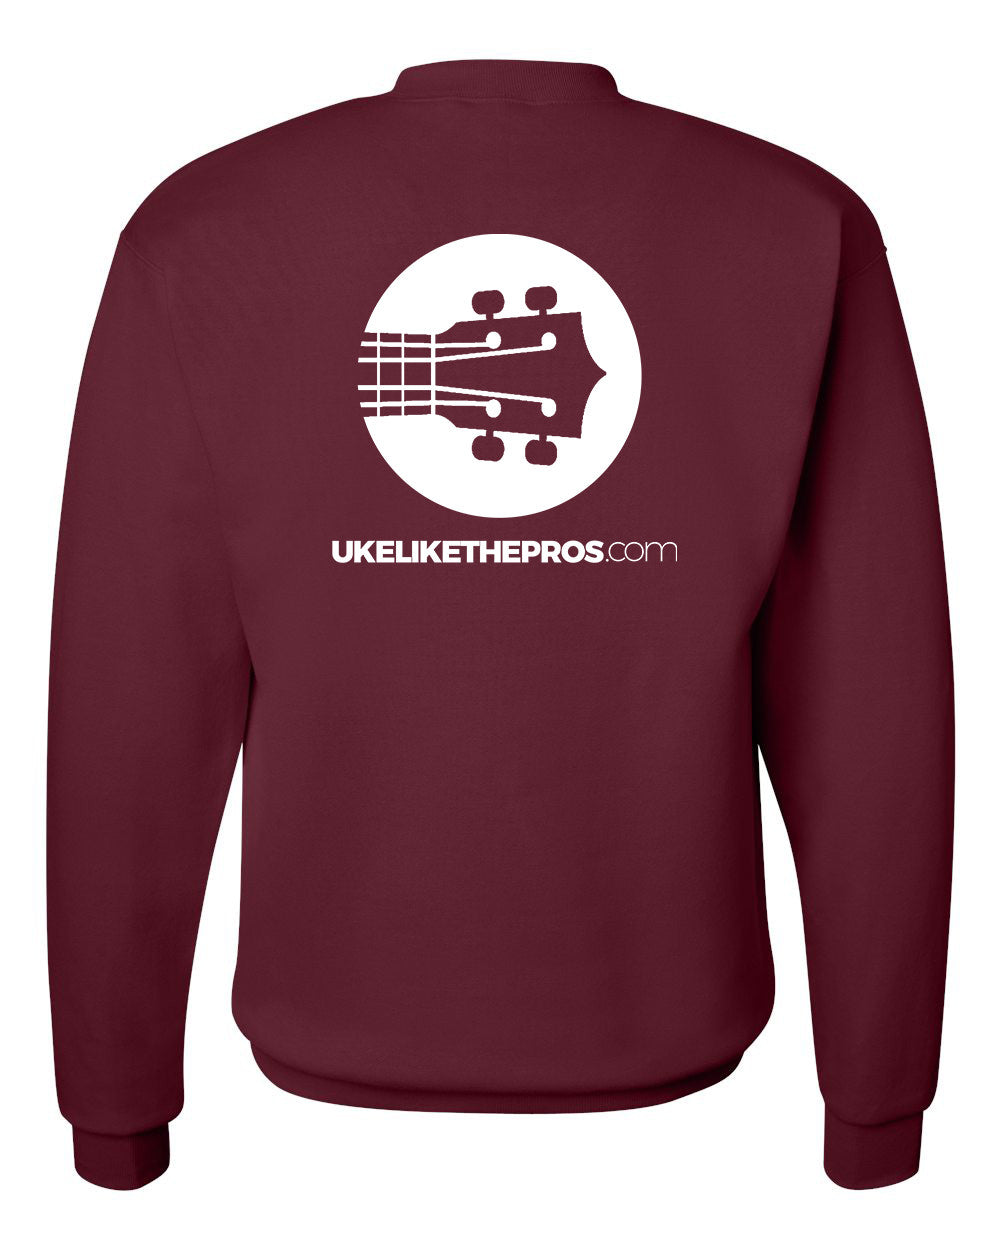 Uke Like The Pros Sweatshirt